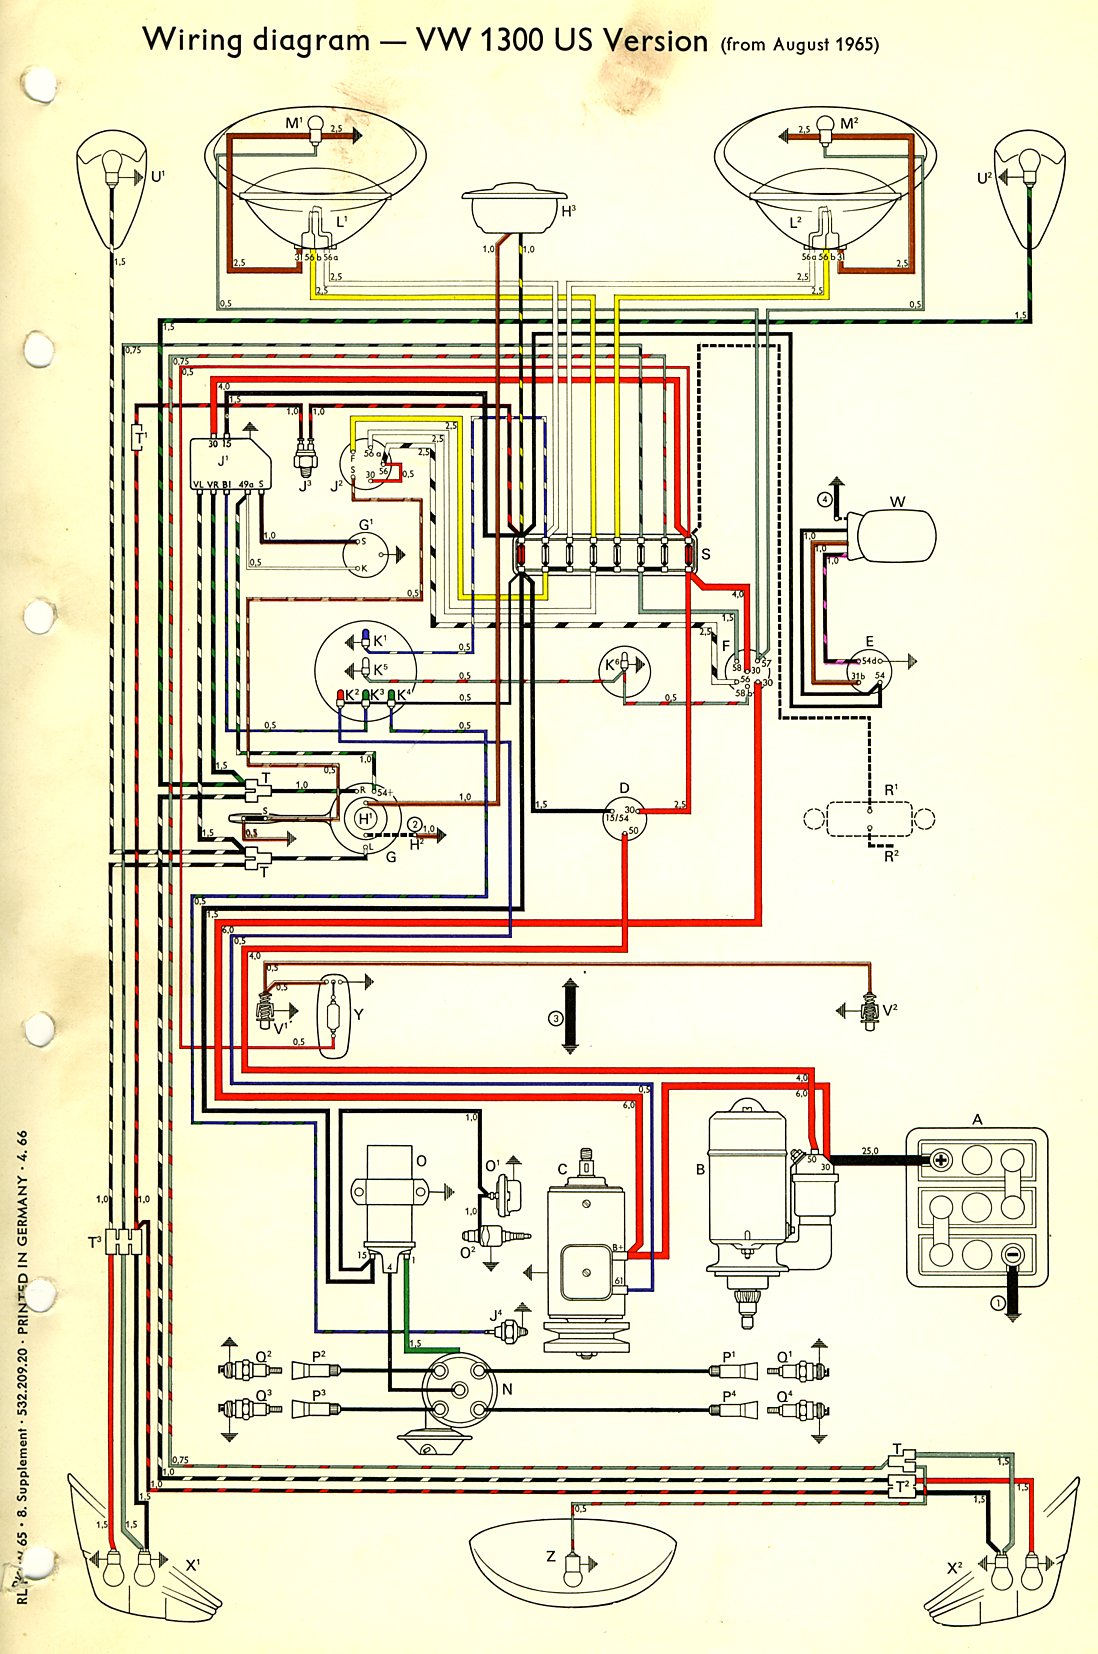 1967 vw wiring diagram - wiring diagrams site storage-private -  storage-private.geasparquet.it  geas parquet